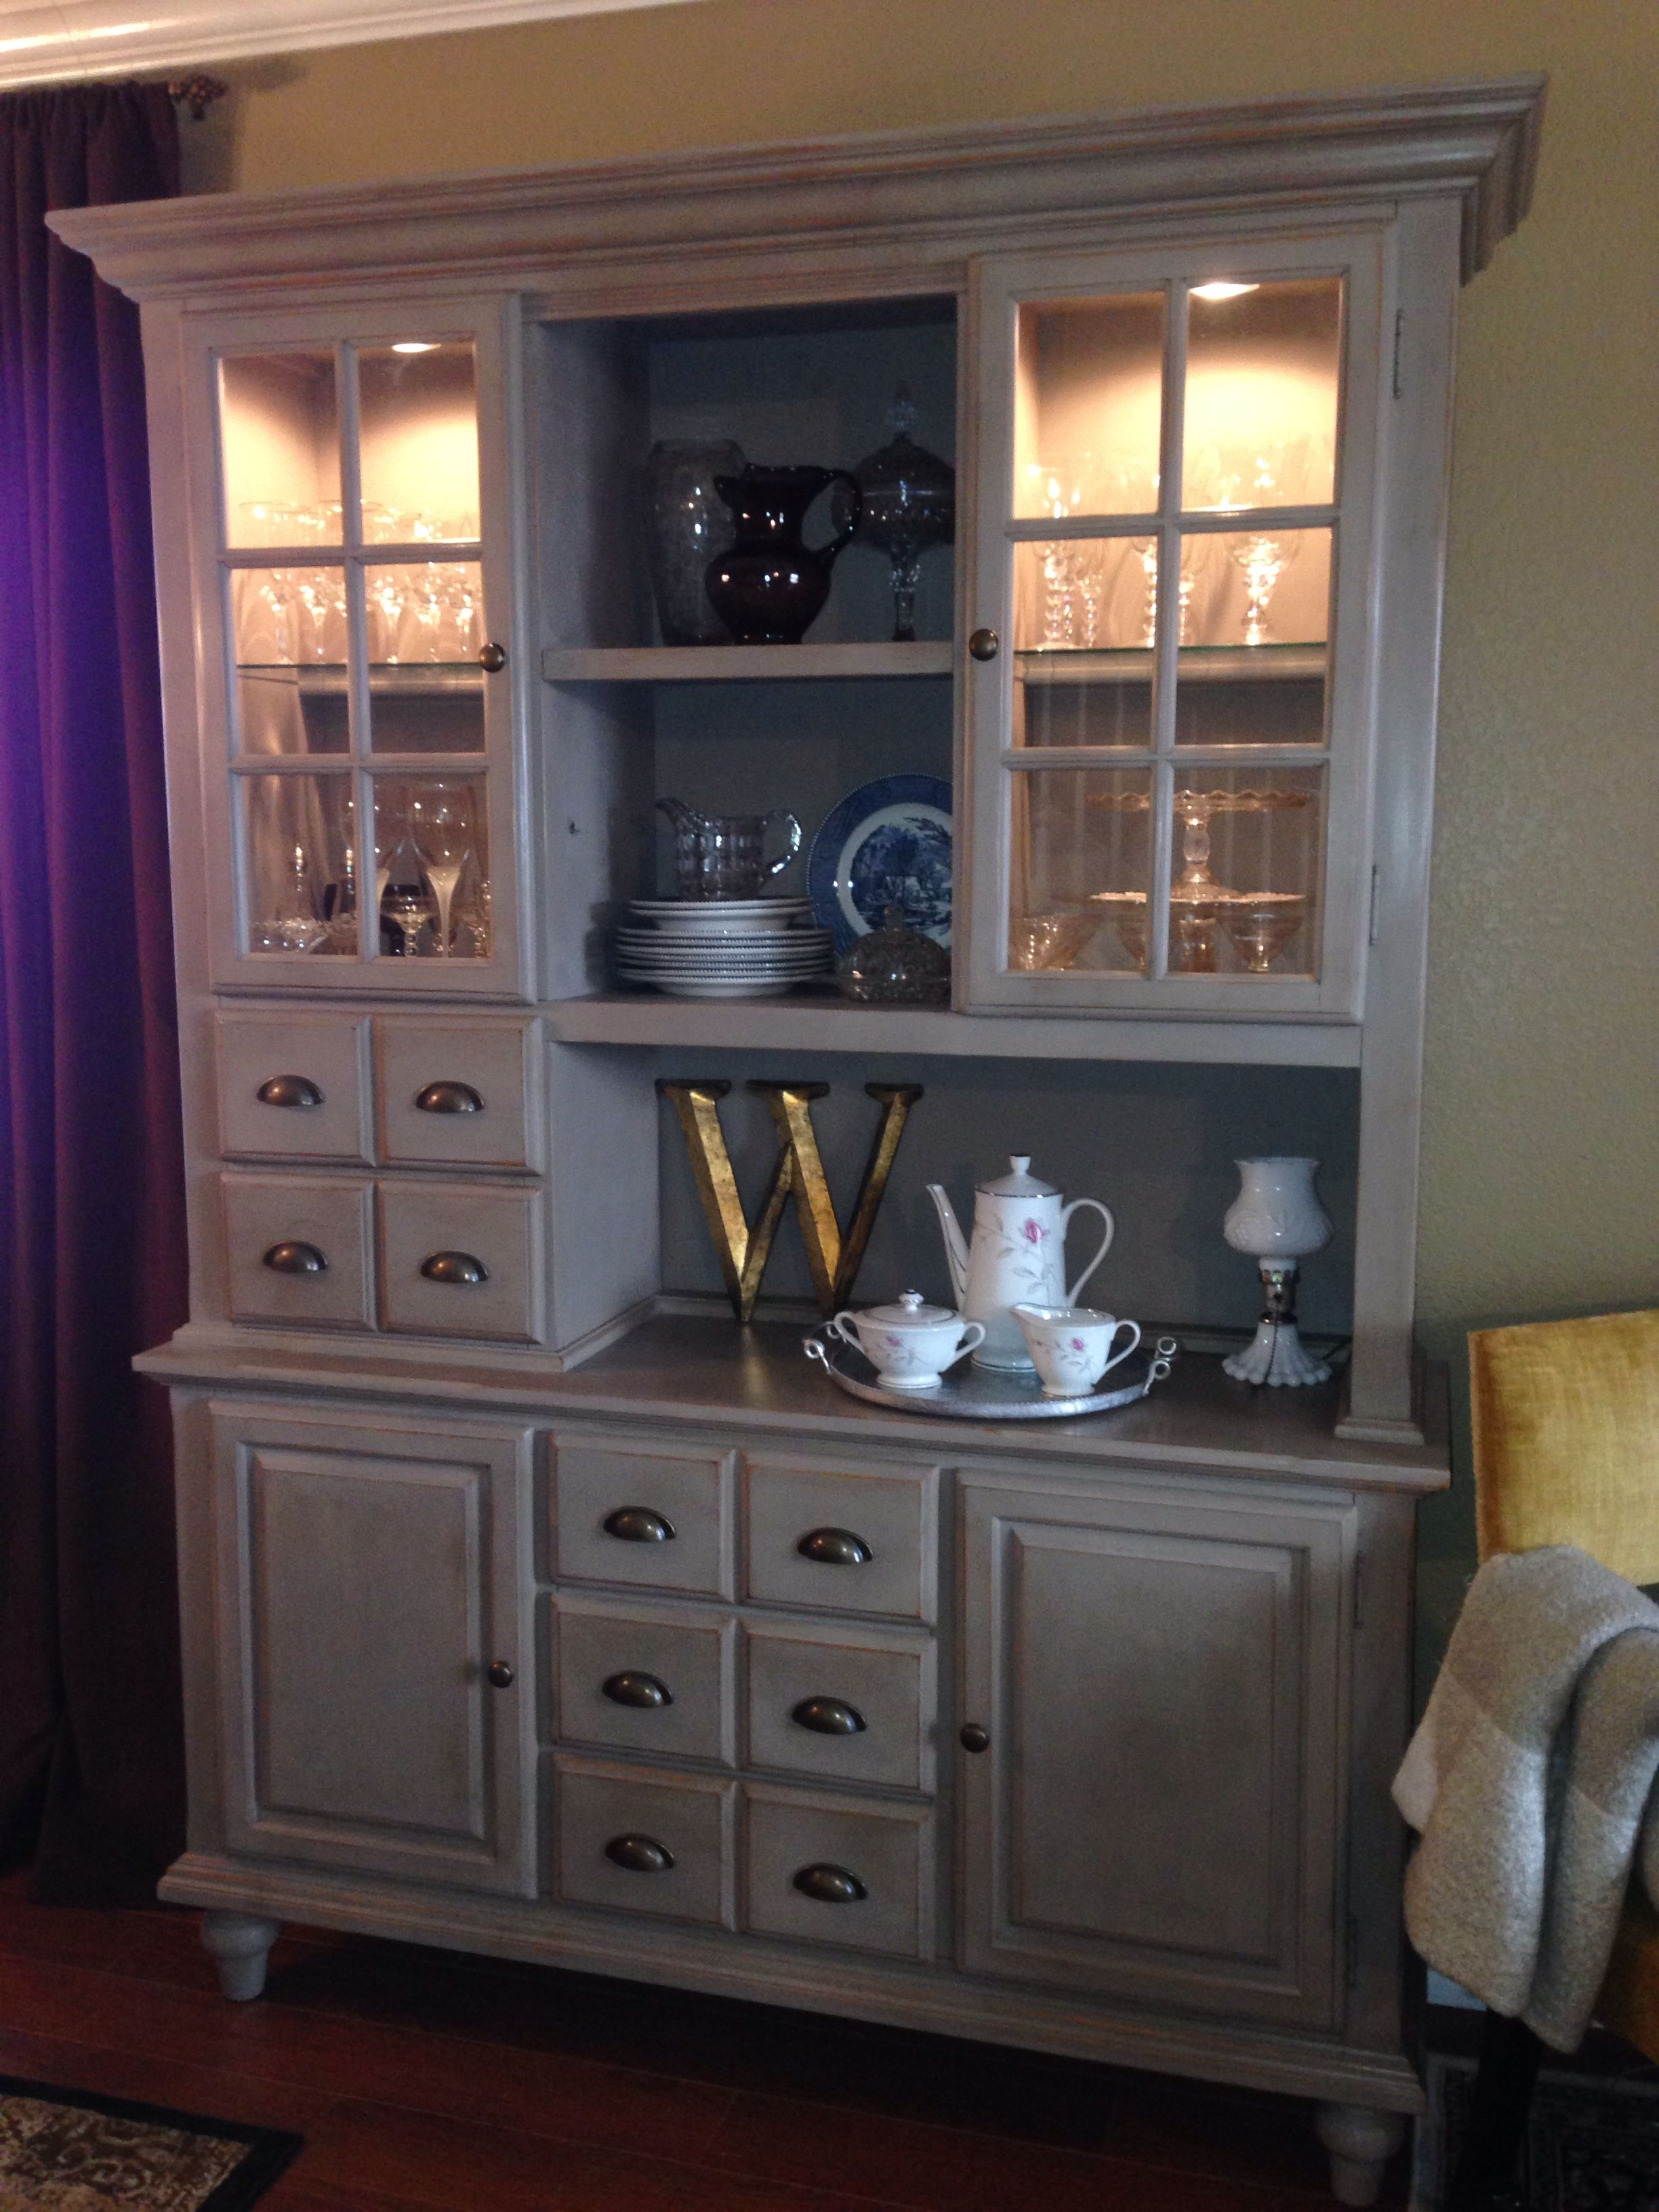 Dining Room Hutch China Cabinet Redo With ASCP Coco Chalk Paint